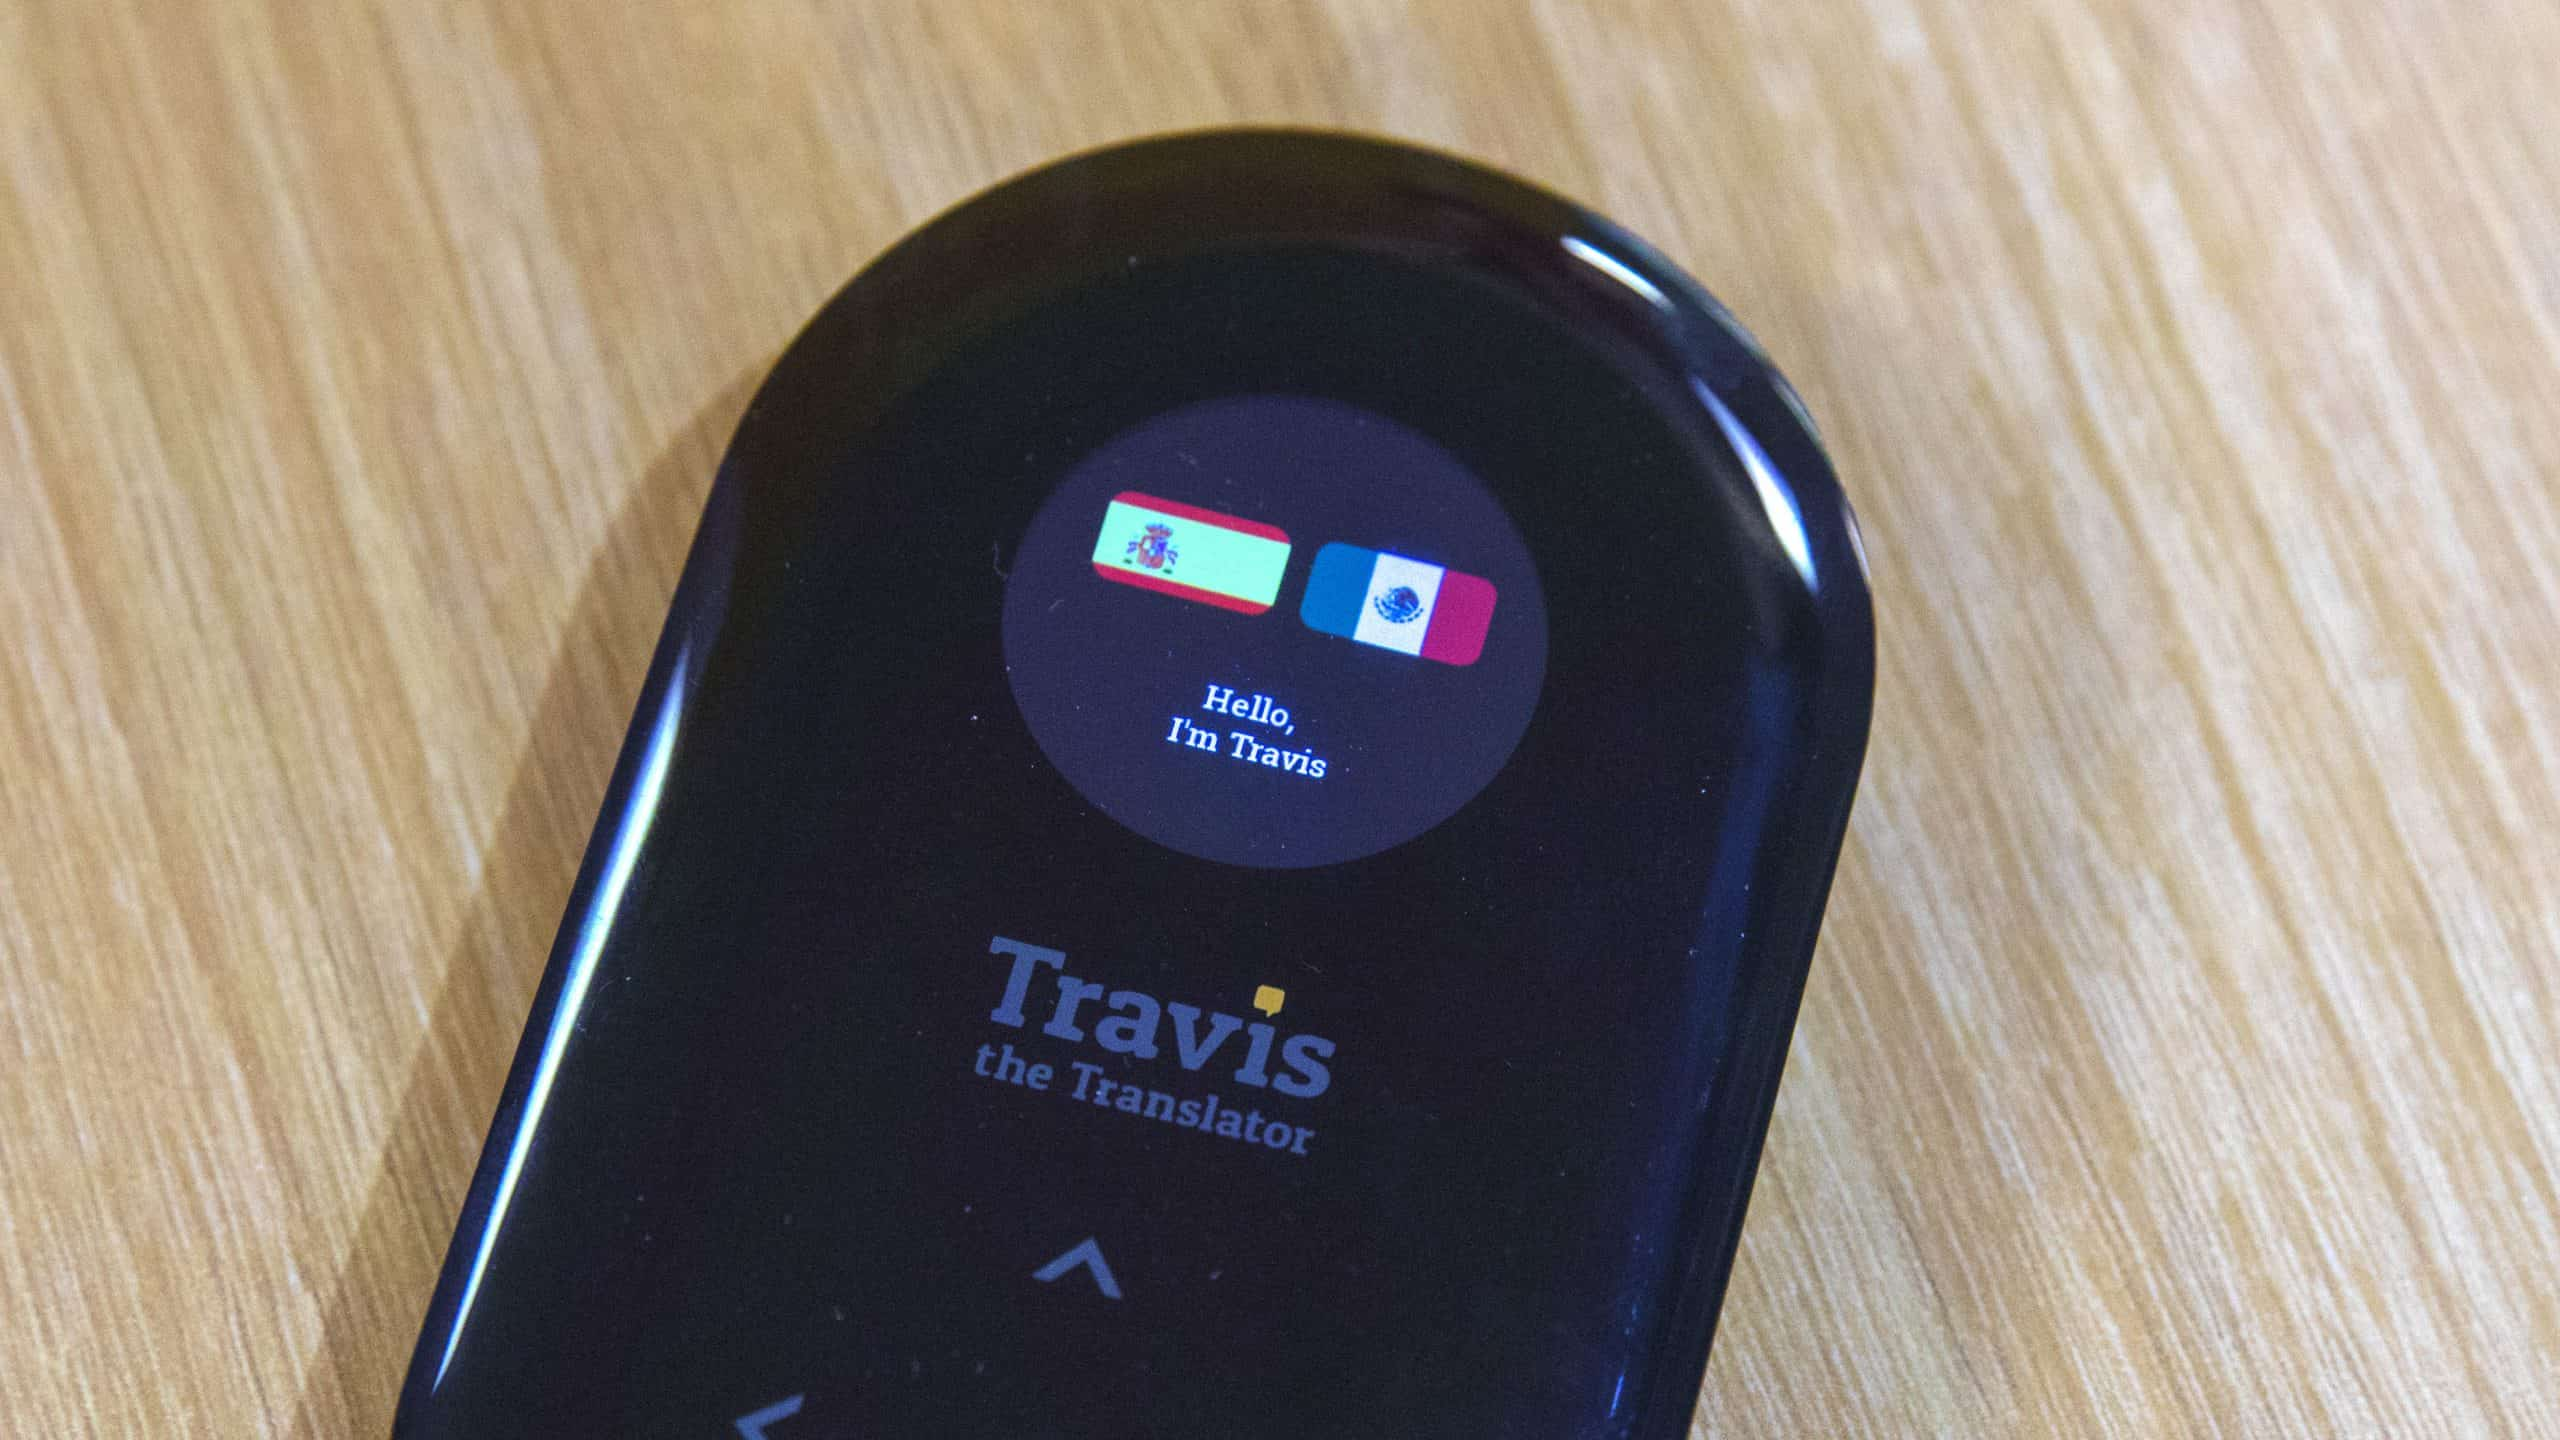 CES 2018 : Travis Is Capable To Translate 80 Languages